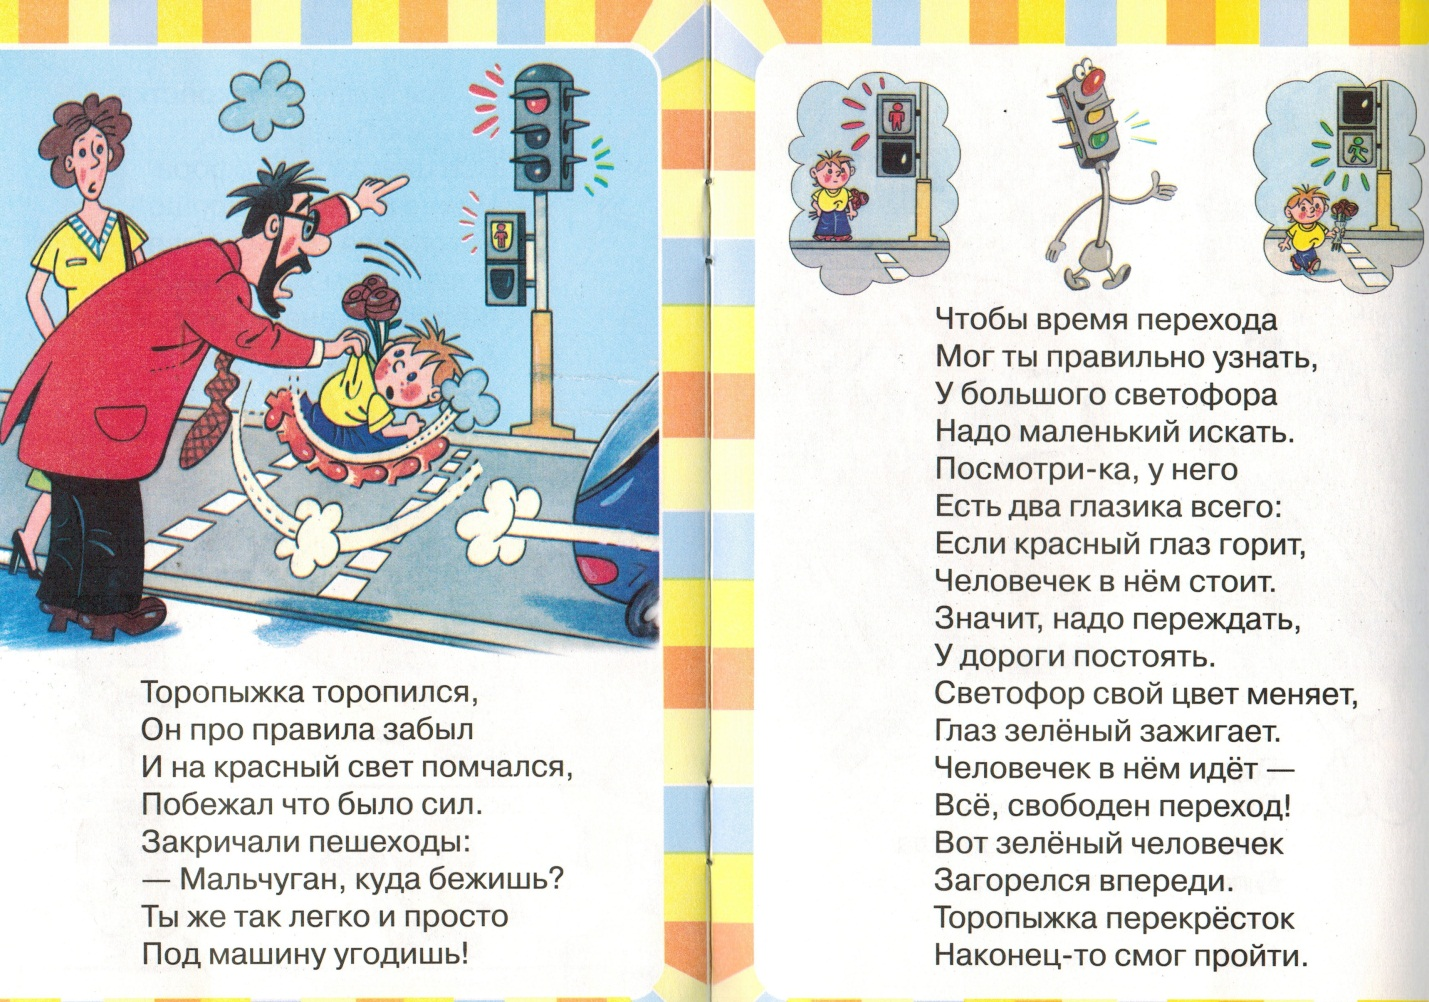 C:\Users\Администратор\Pictures\ControlCenter4\Scan\CCI28012014_0005.jpg